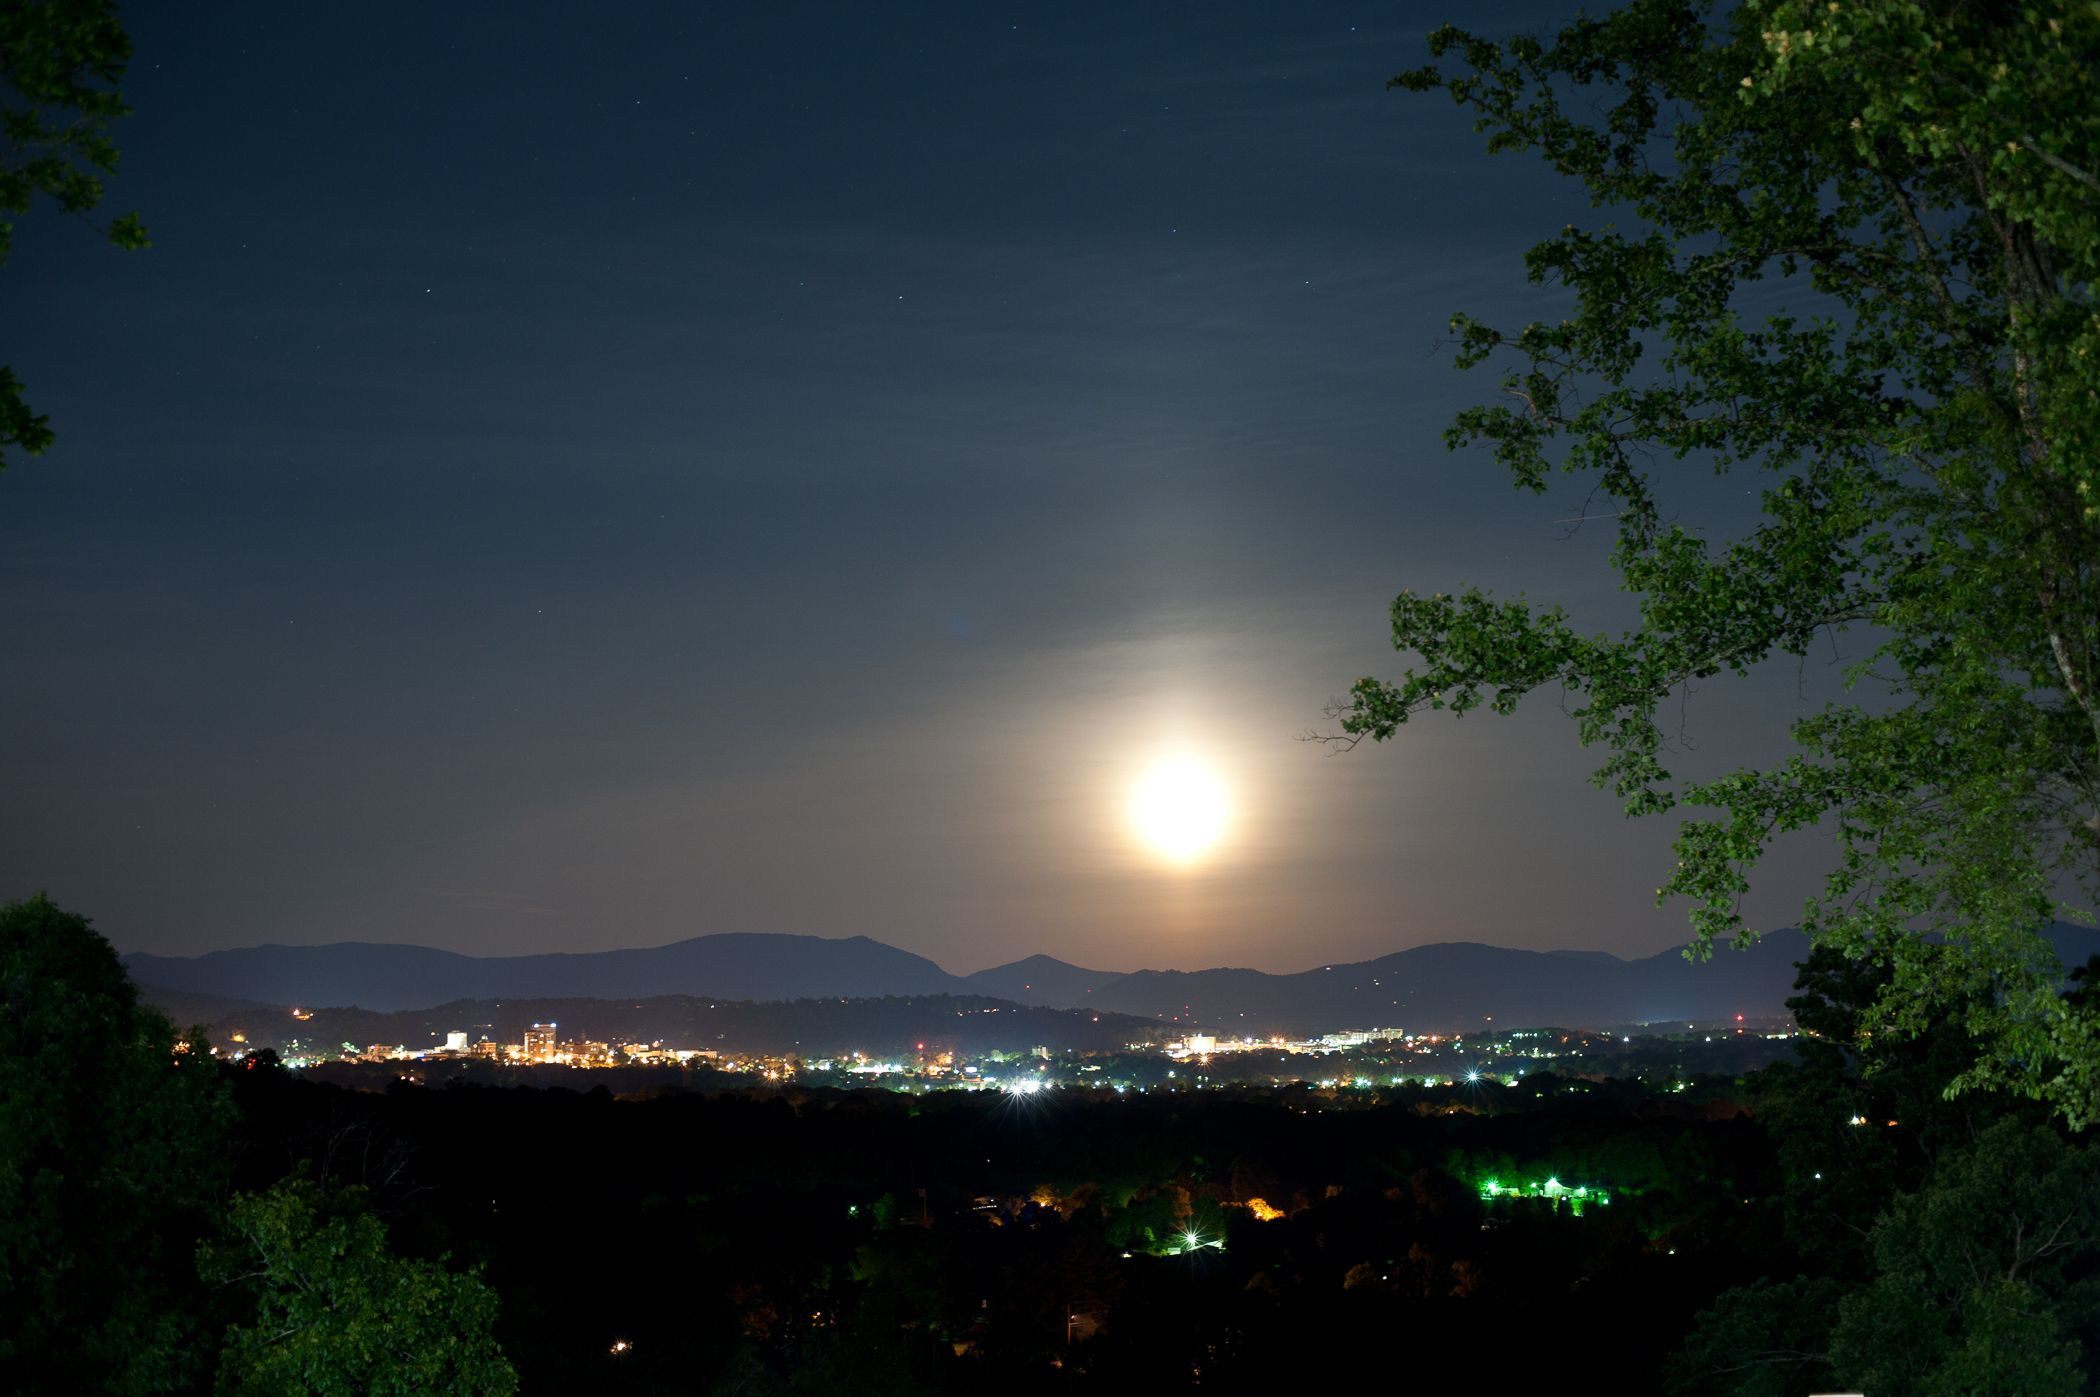 That moon is INSANE!! Taken from the Overlook Deck outside of the Crest Center